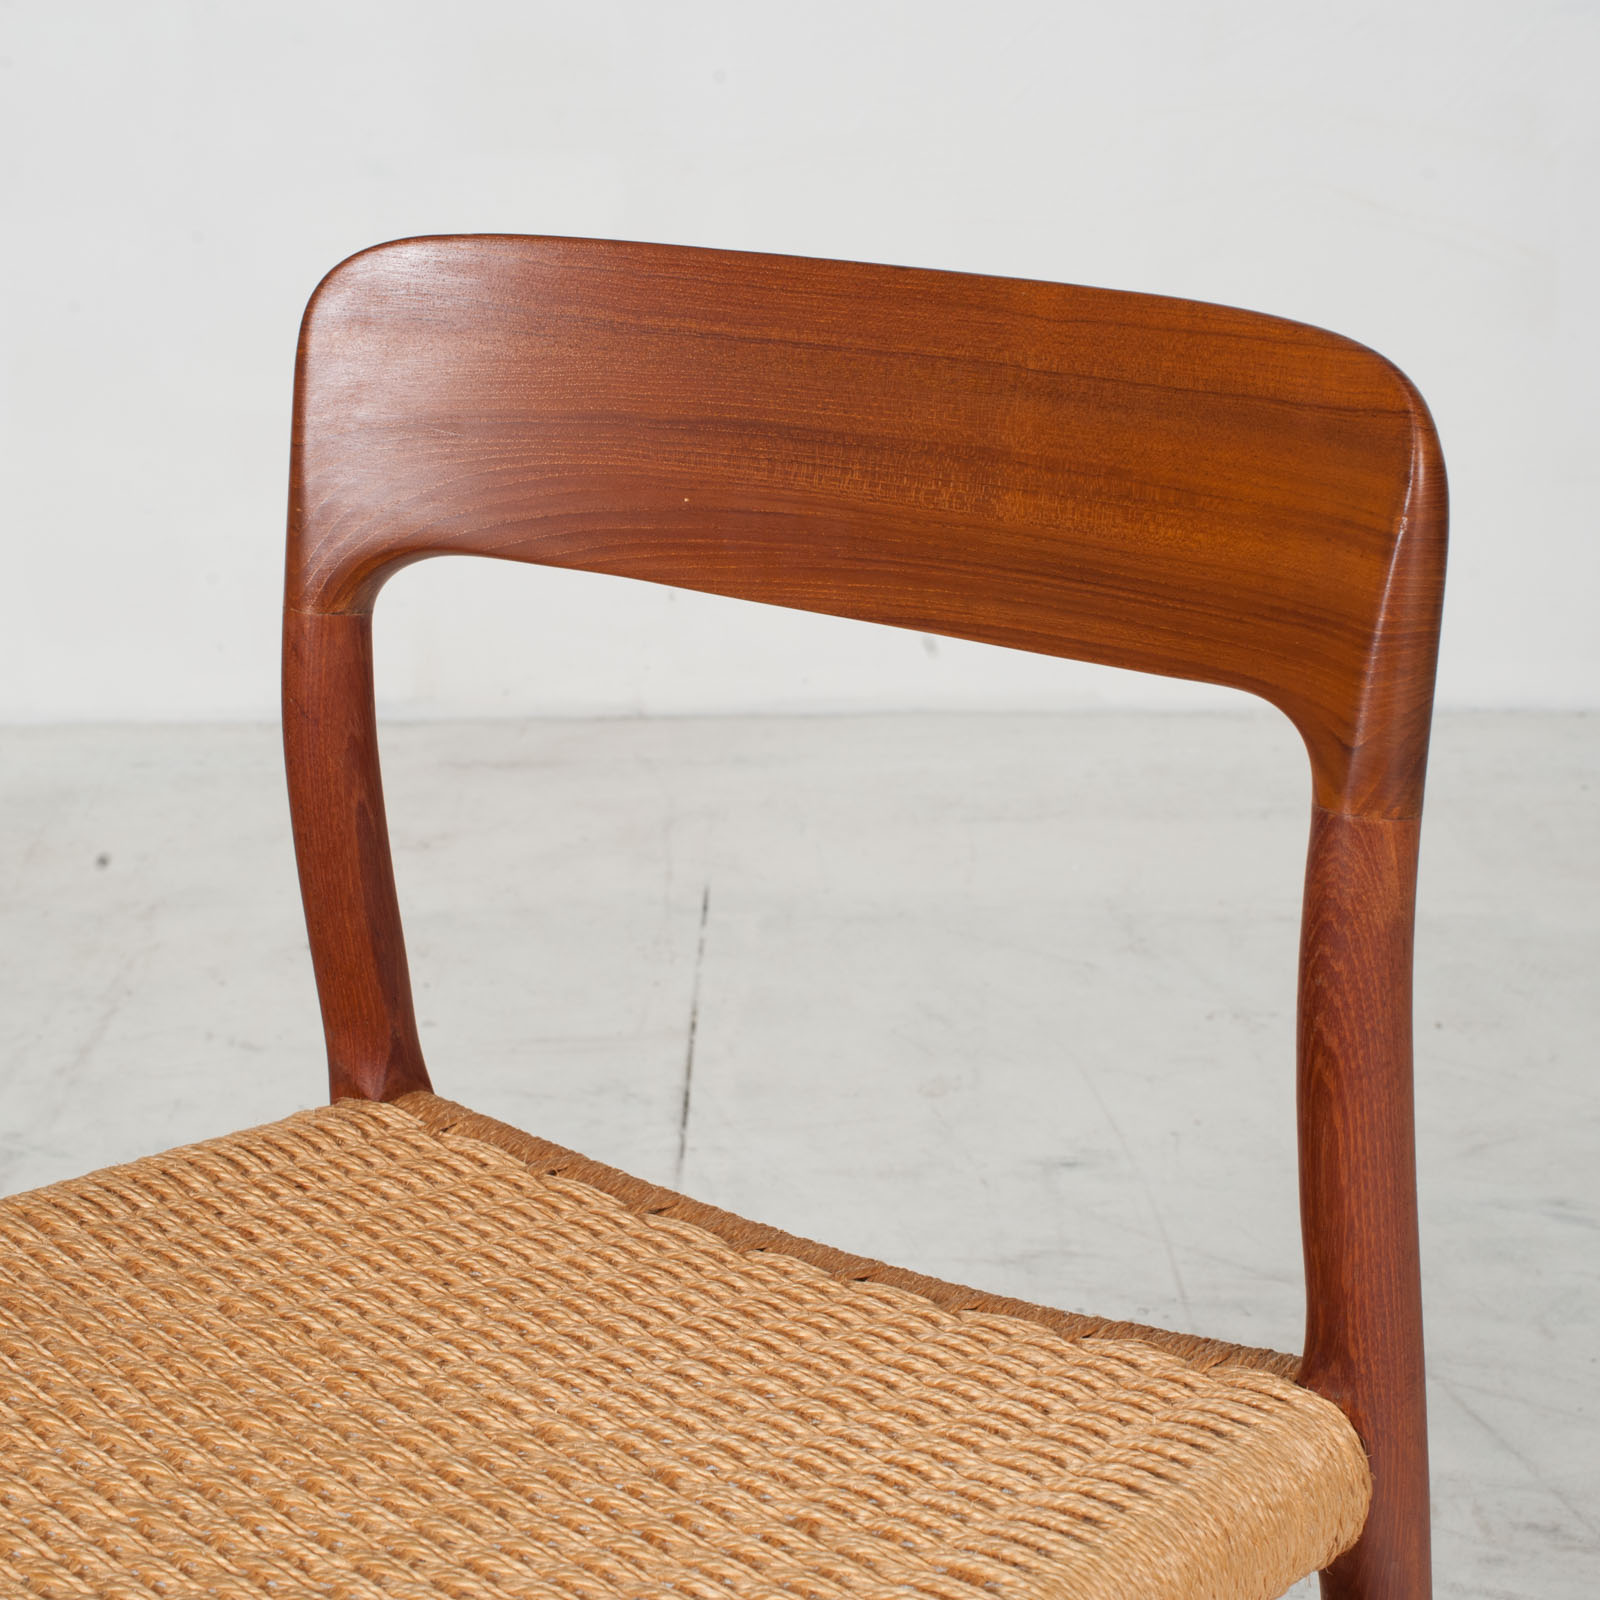 Set Of 6 Model 75 Dining Chairs By J. L. Moller In Teak And Cord 1960s Denmark 06